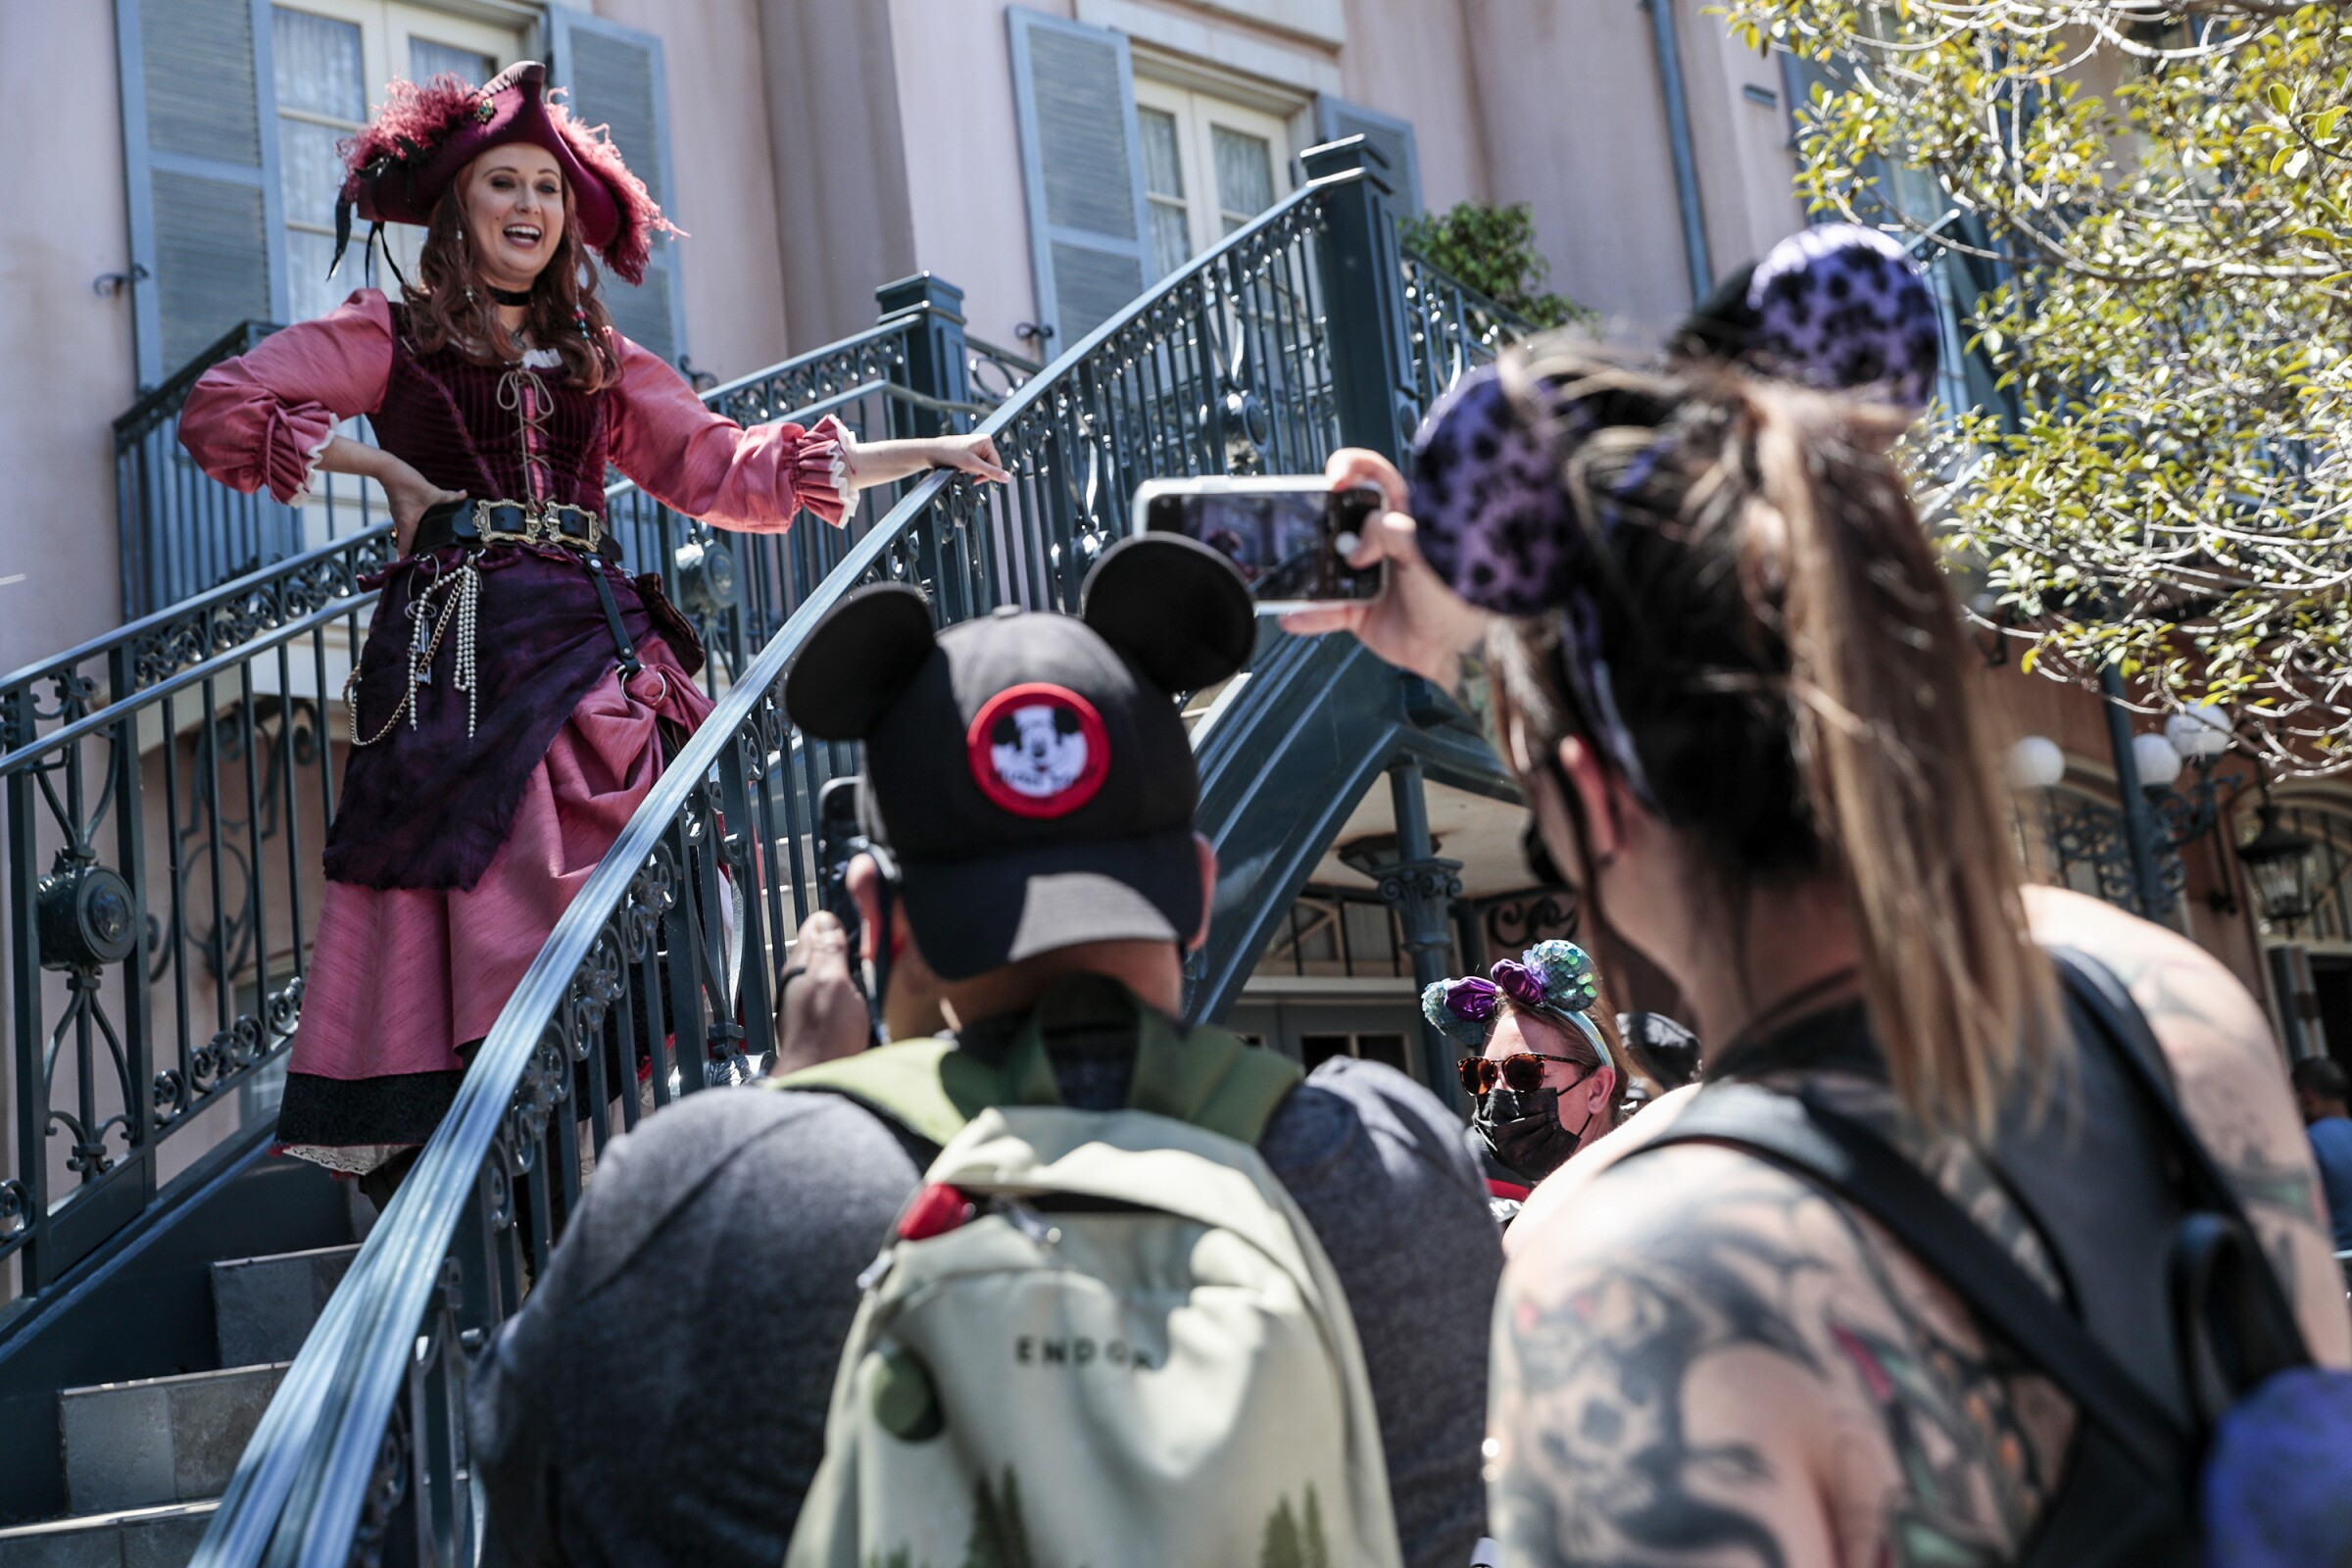 A woman in a pirate costume chats with people wearing mouse ears